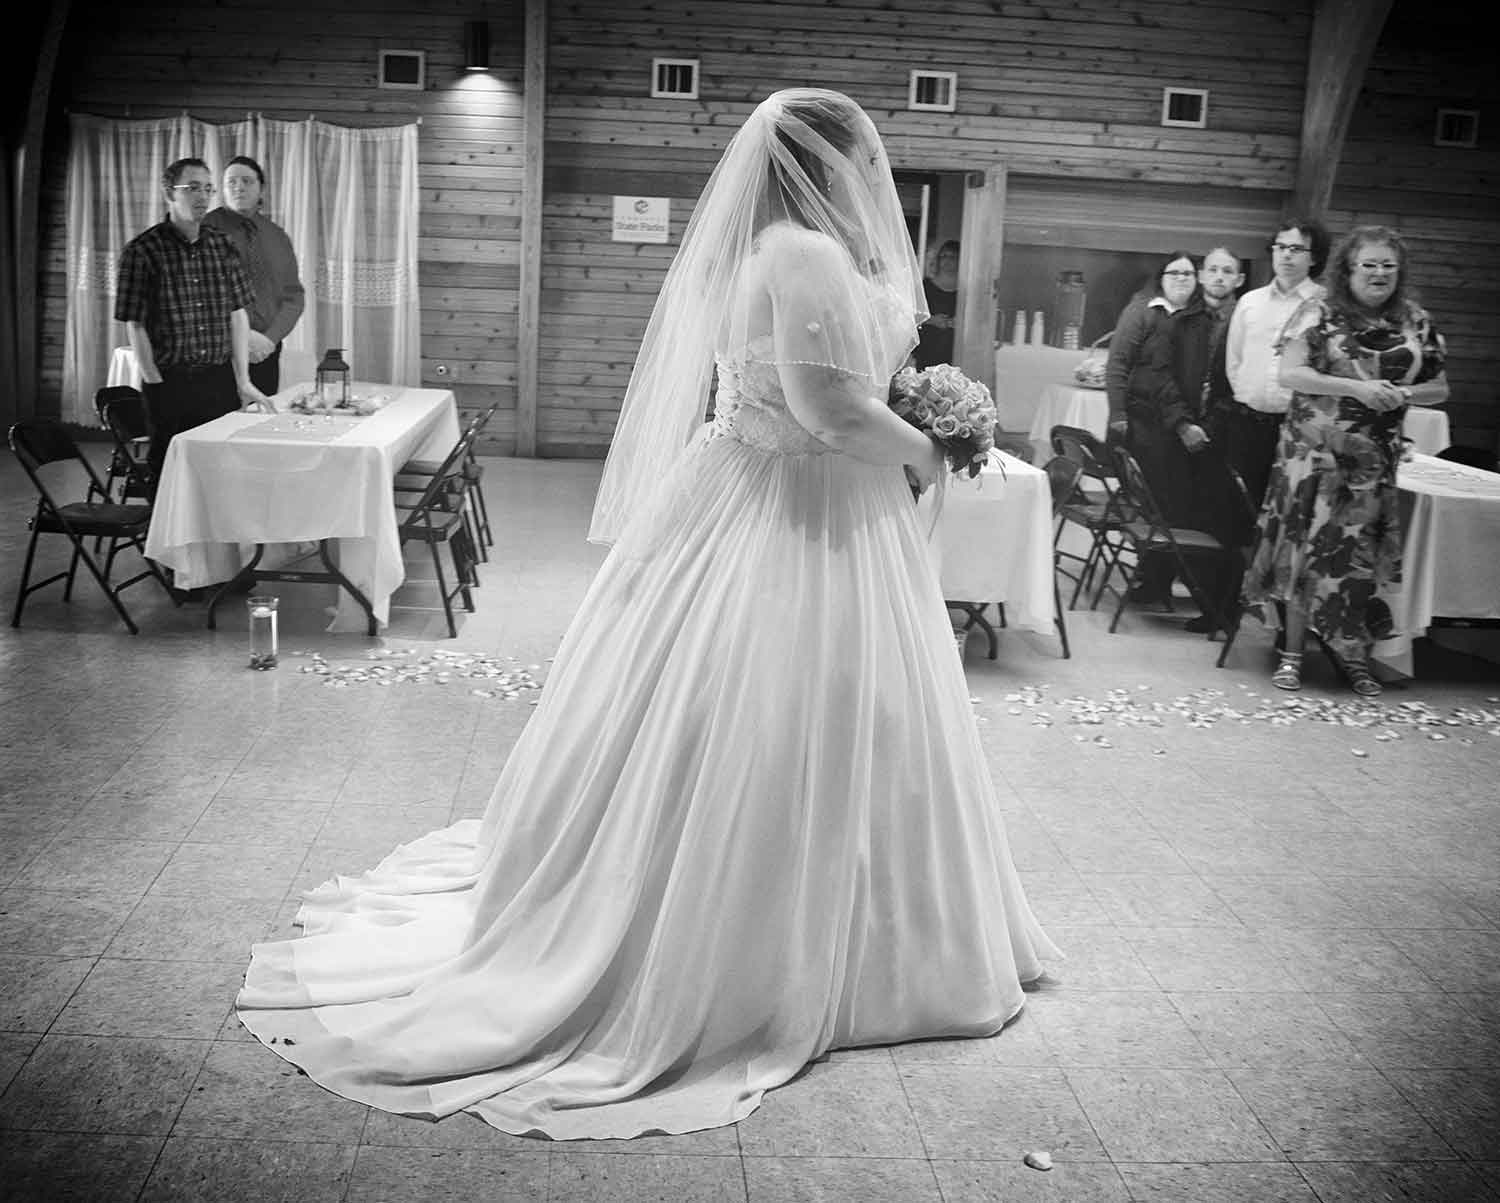 The bride walks down the aisle while the families stand at their tables. photos by Brianna Bivens - 2016